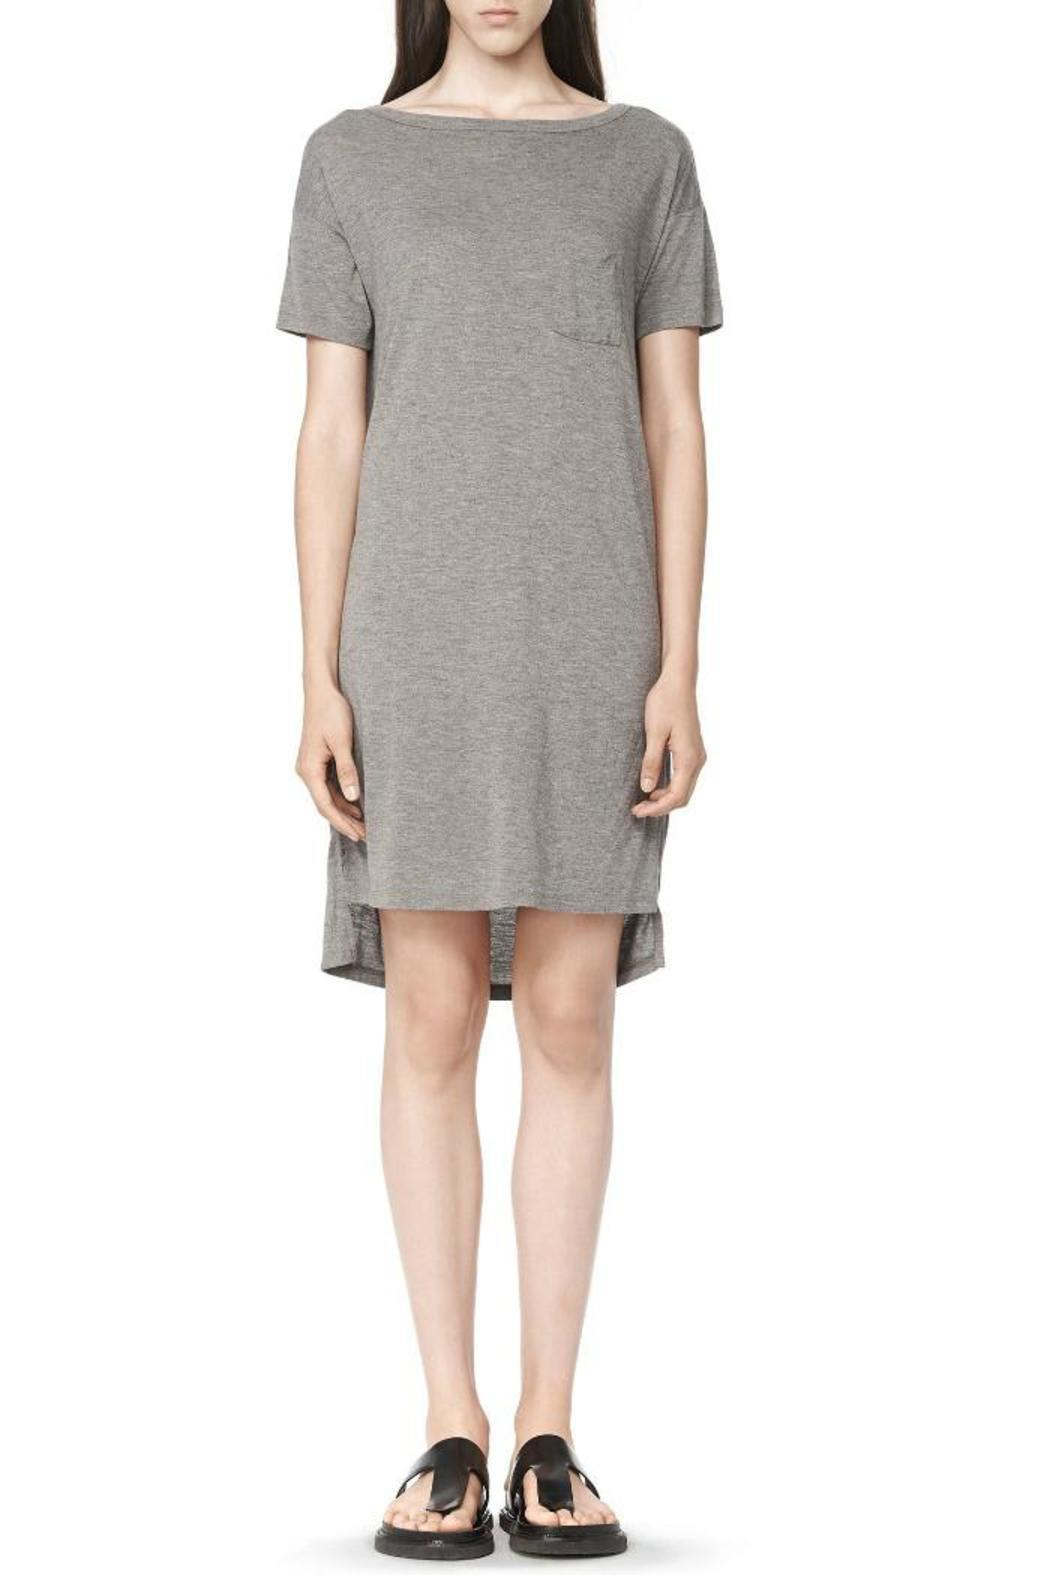 T by Alexander Wang Classic Boatneck Dress - Front Cropped Image